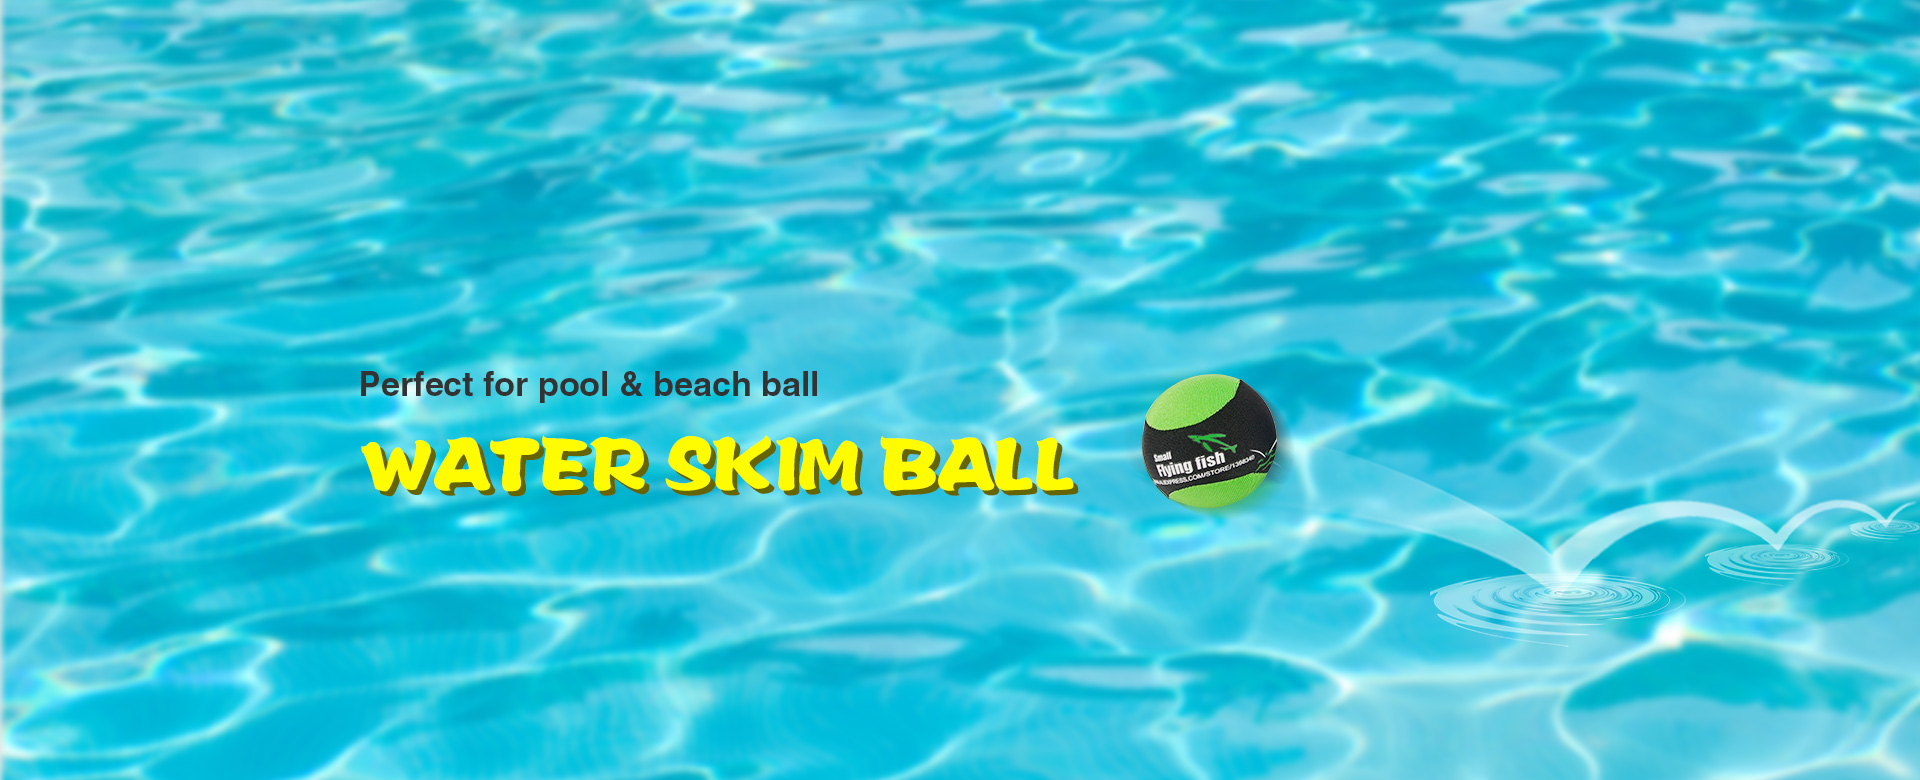 Water Skim Ball